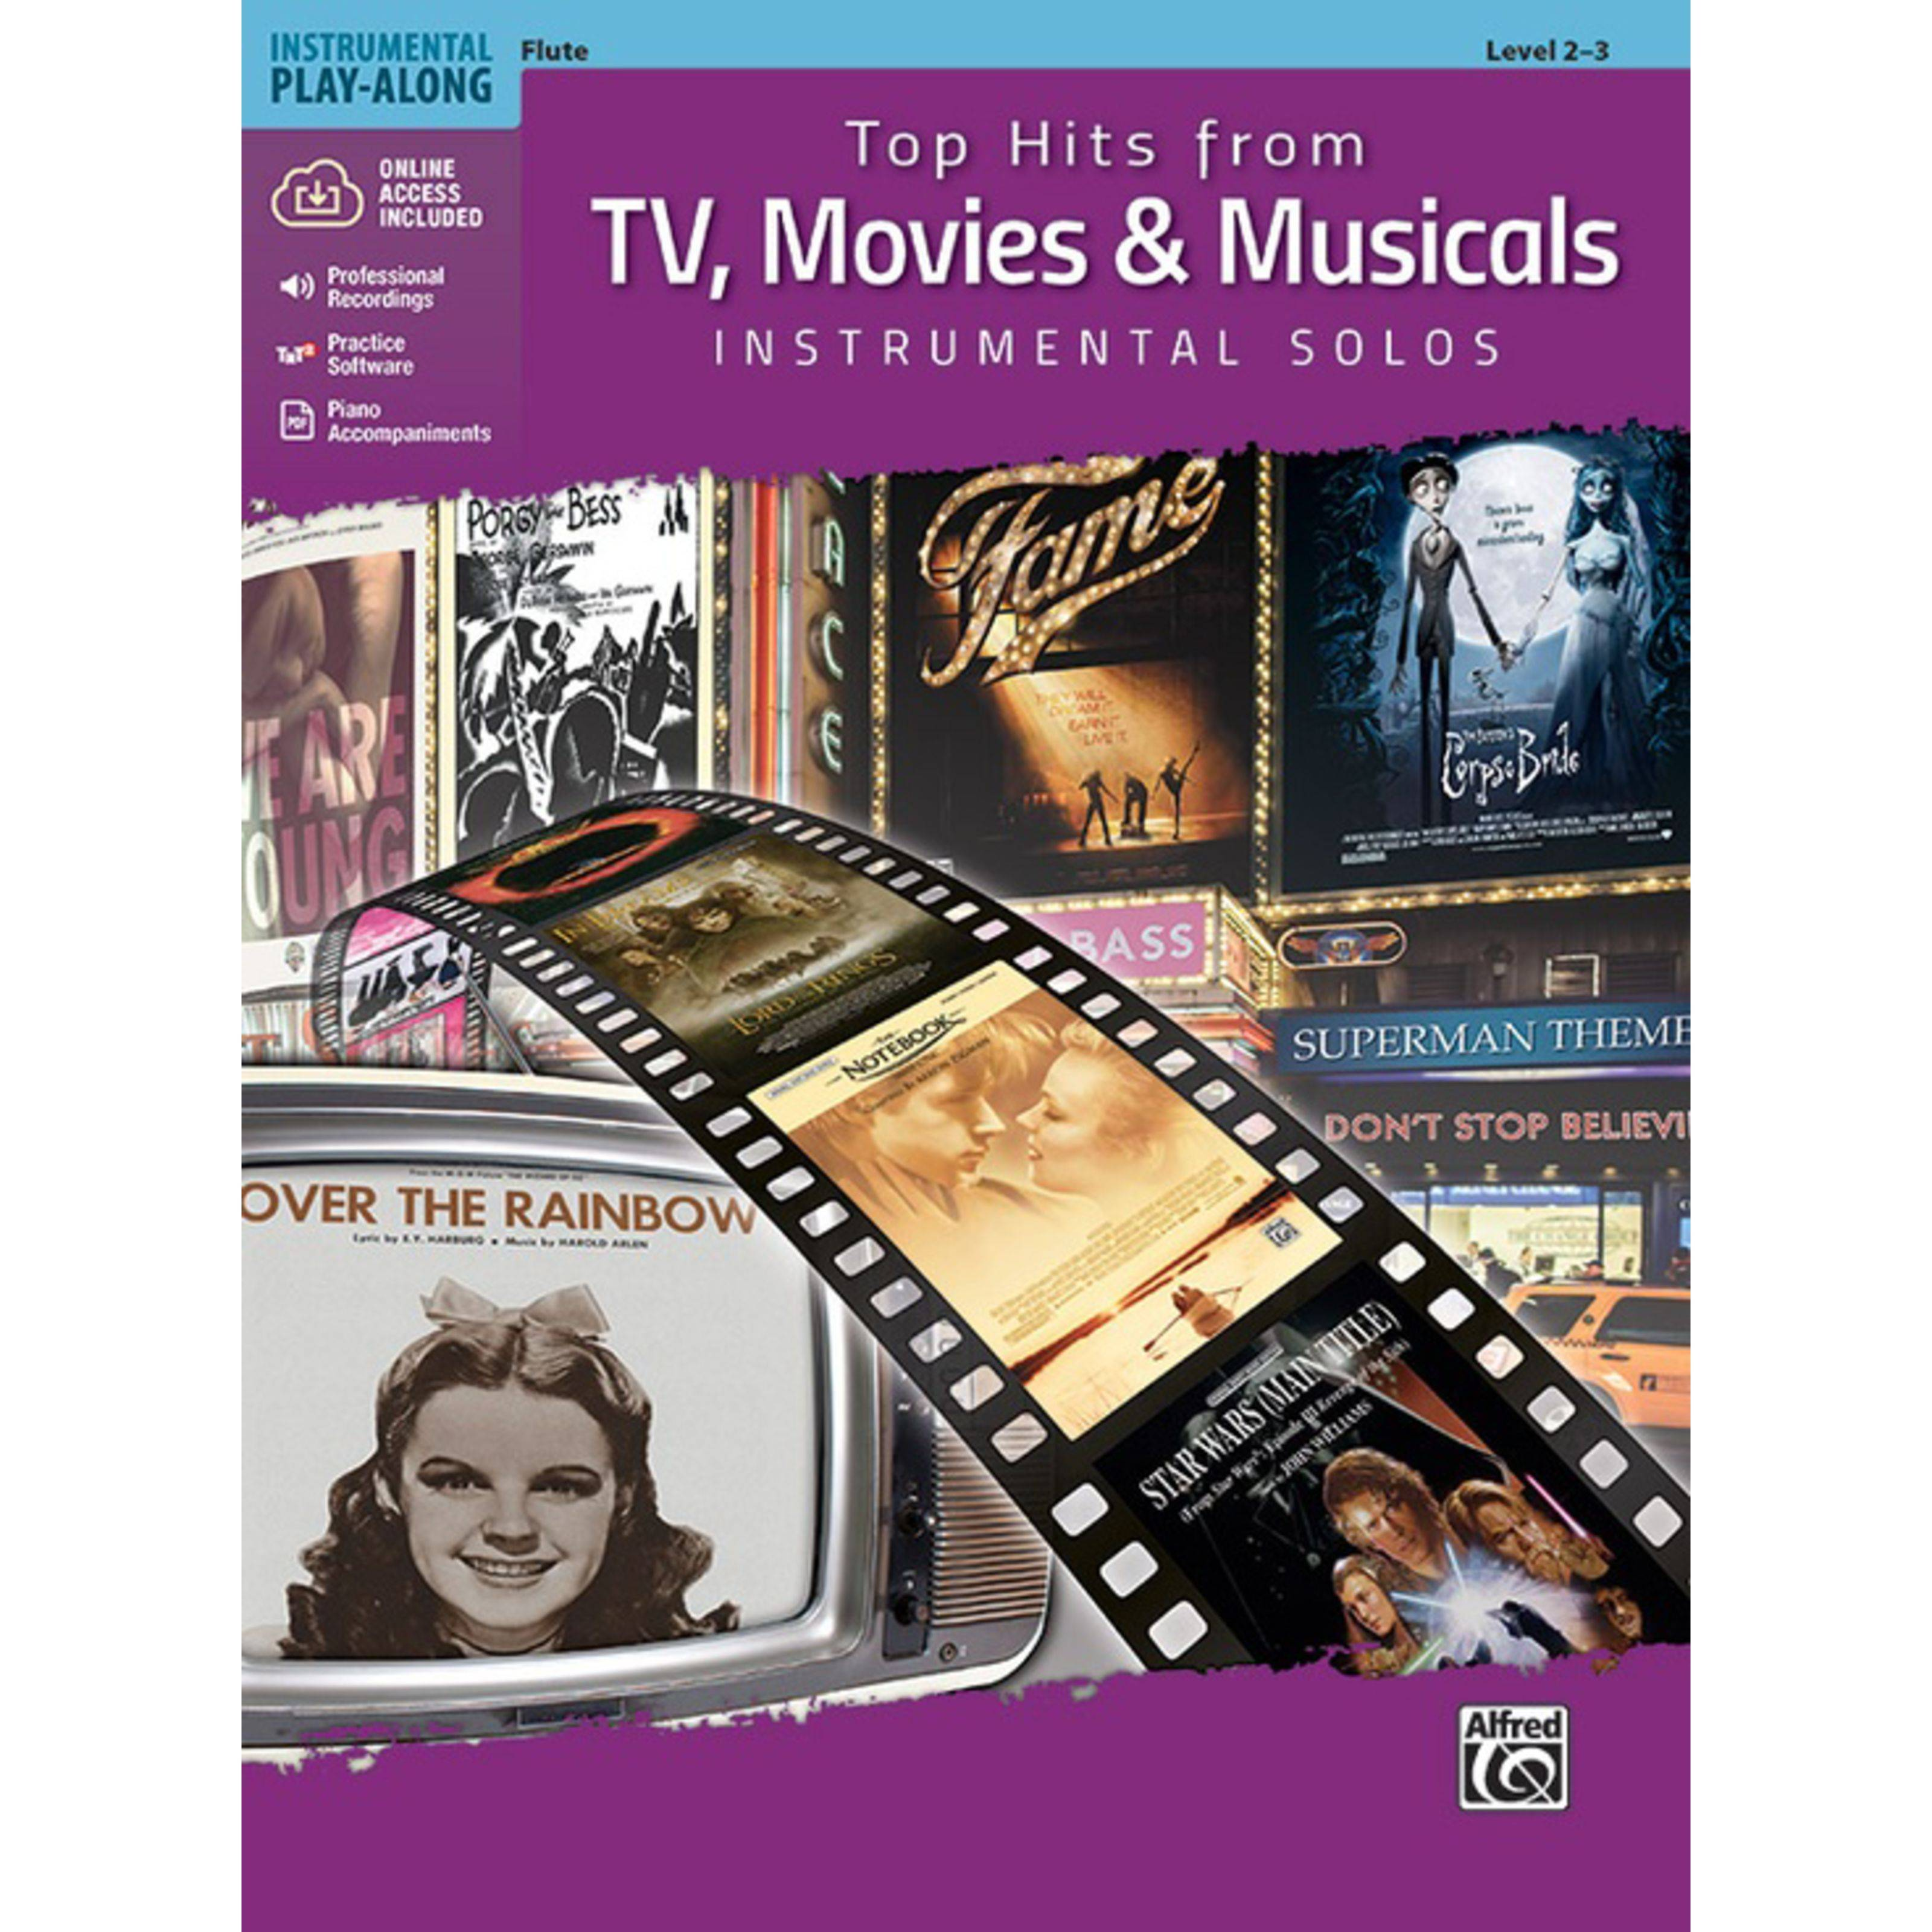 Alfred Music Top Hits from TV, Movies & Musicals - Flute